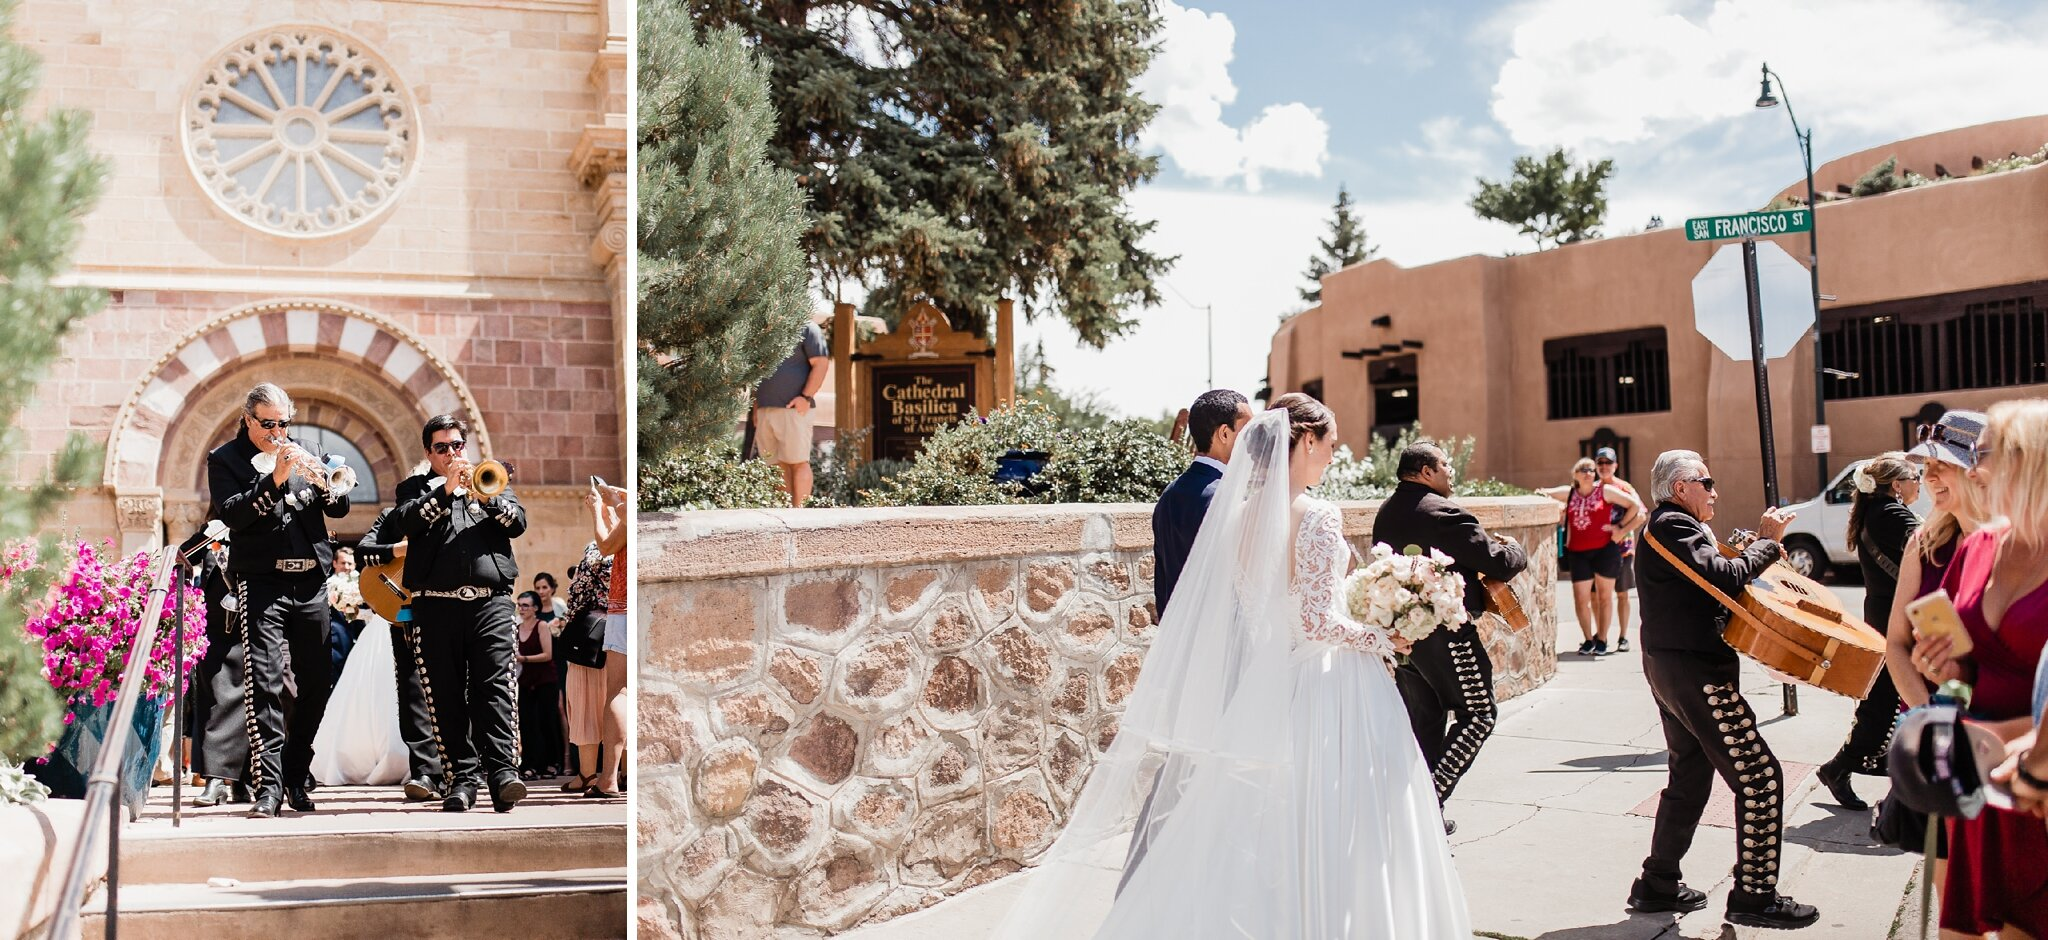 Alicia+lucia+photography+-+albuquerque+wedding+photographer+-+santa+fe+wedding+photography+-+new+mexico+wedding+photographer+-+new+mexico+wedding+-+hindu+wedding+-+catholic+wedding+-+multicultural+wedding+-+santa+fe+wedding_0039.jpg